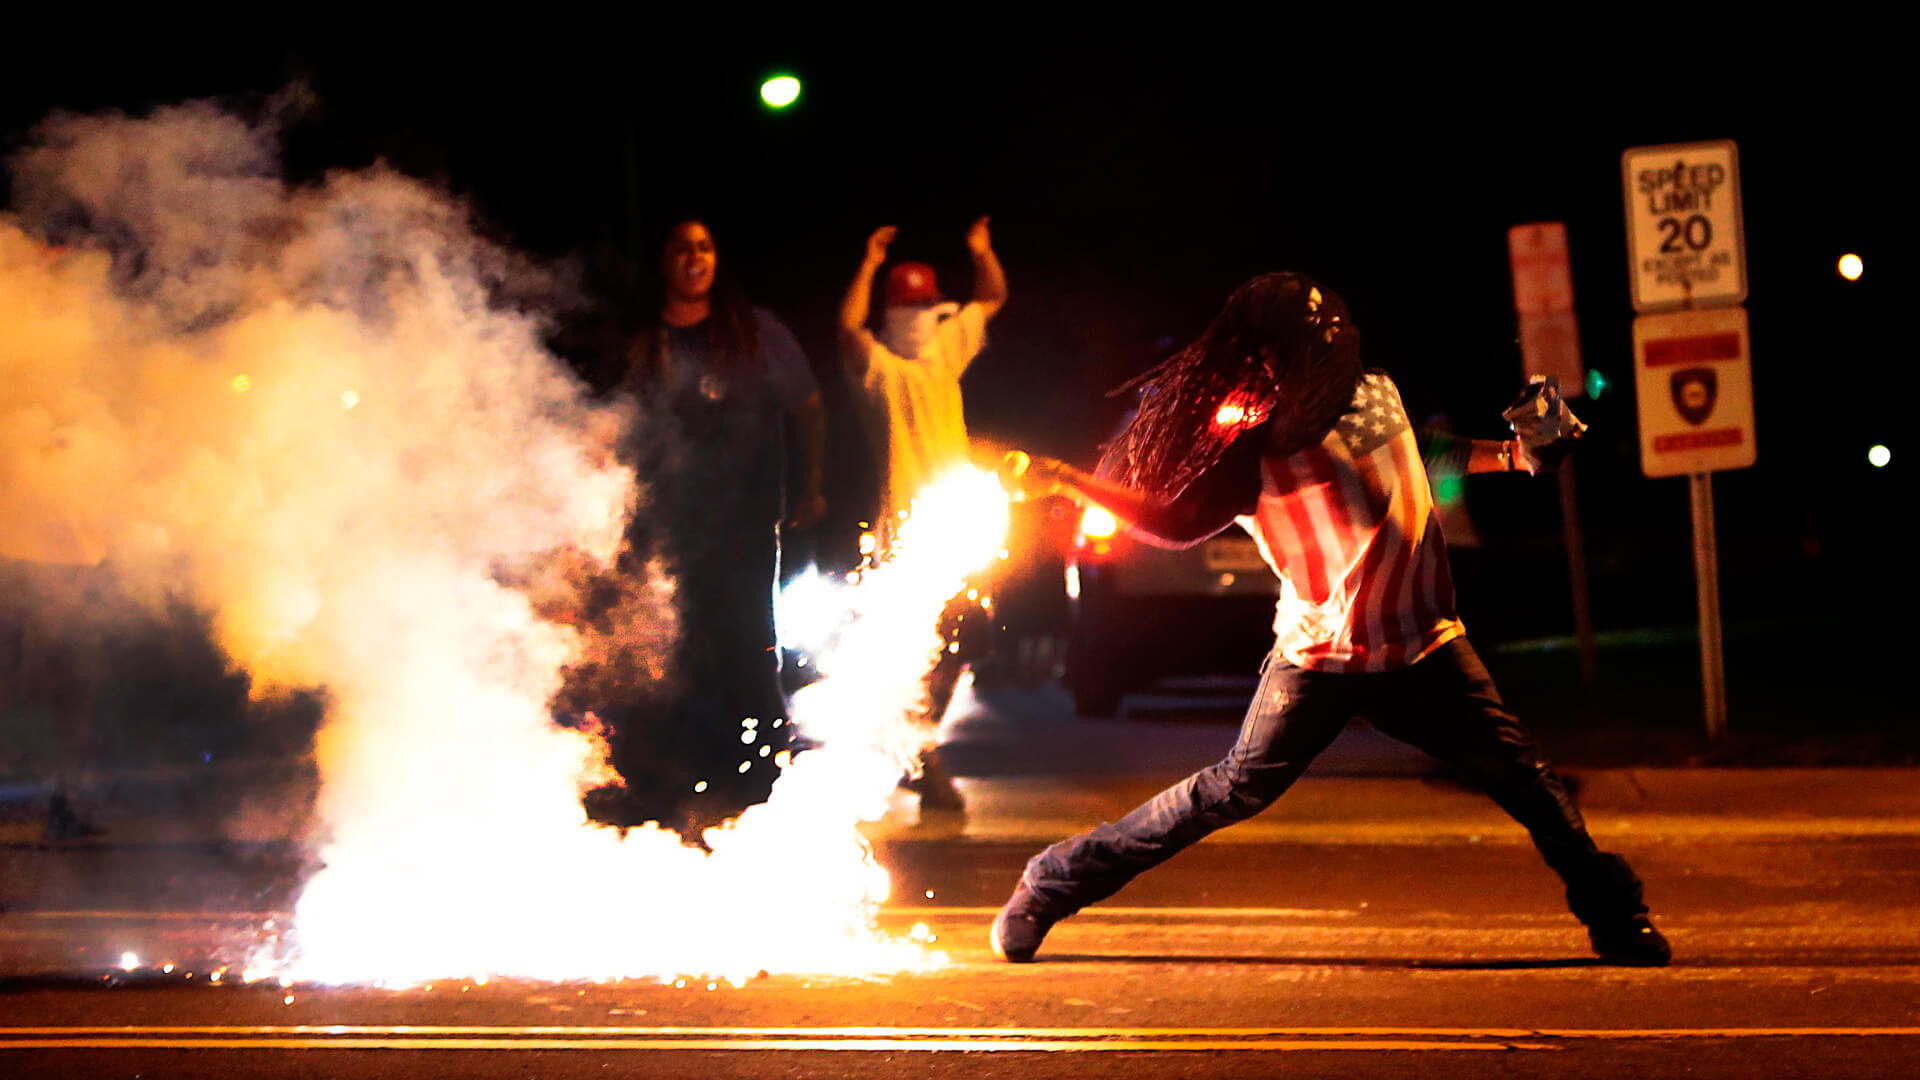 Protester Ed Crawford throws a tear gas canister away from the crowd during a protest in Ferguson in 2014.